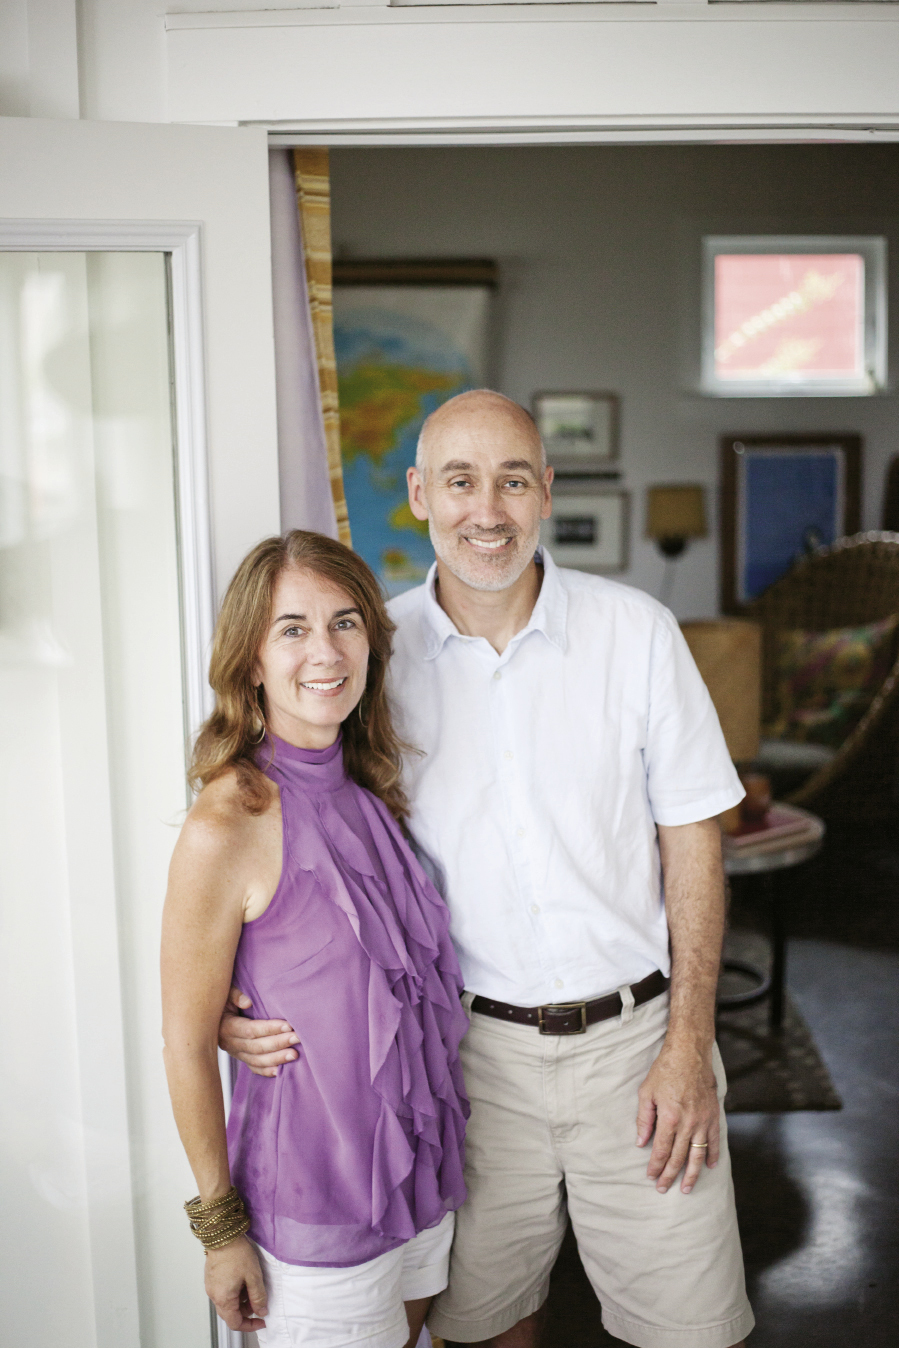 Homeowners Jennifer Mathis and Mike Cline